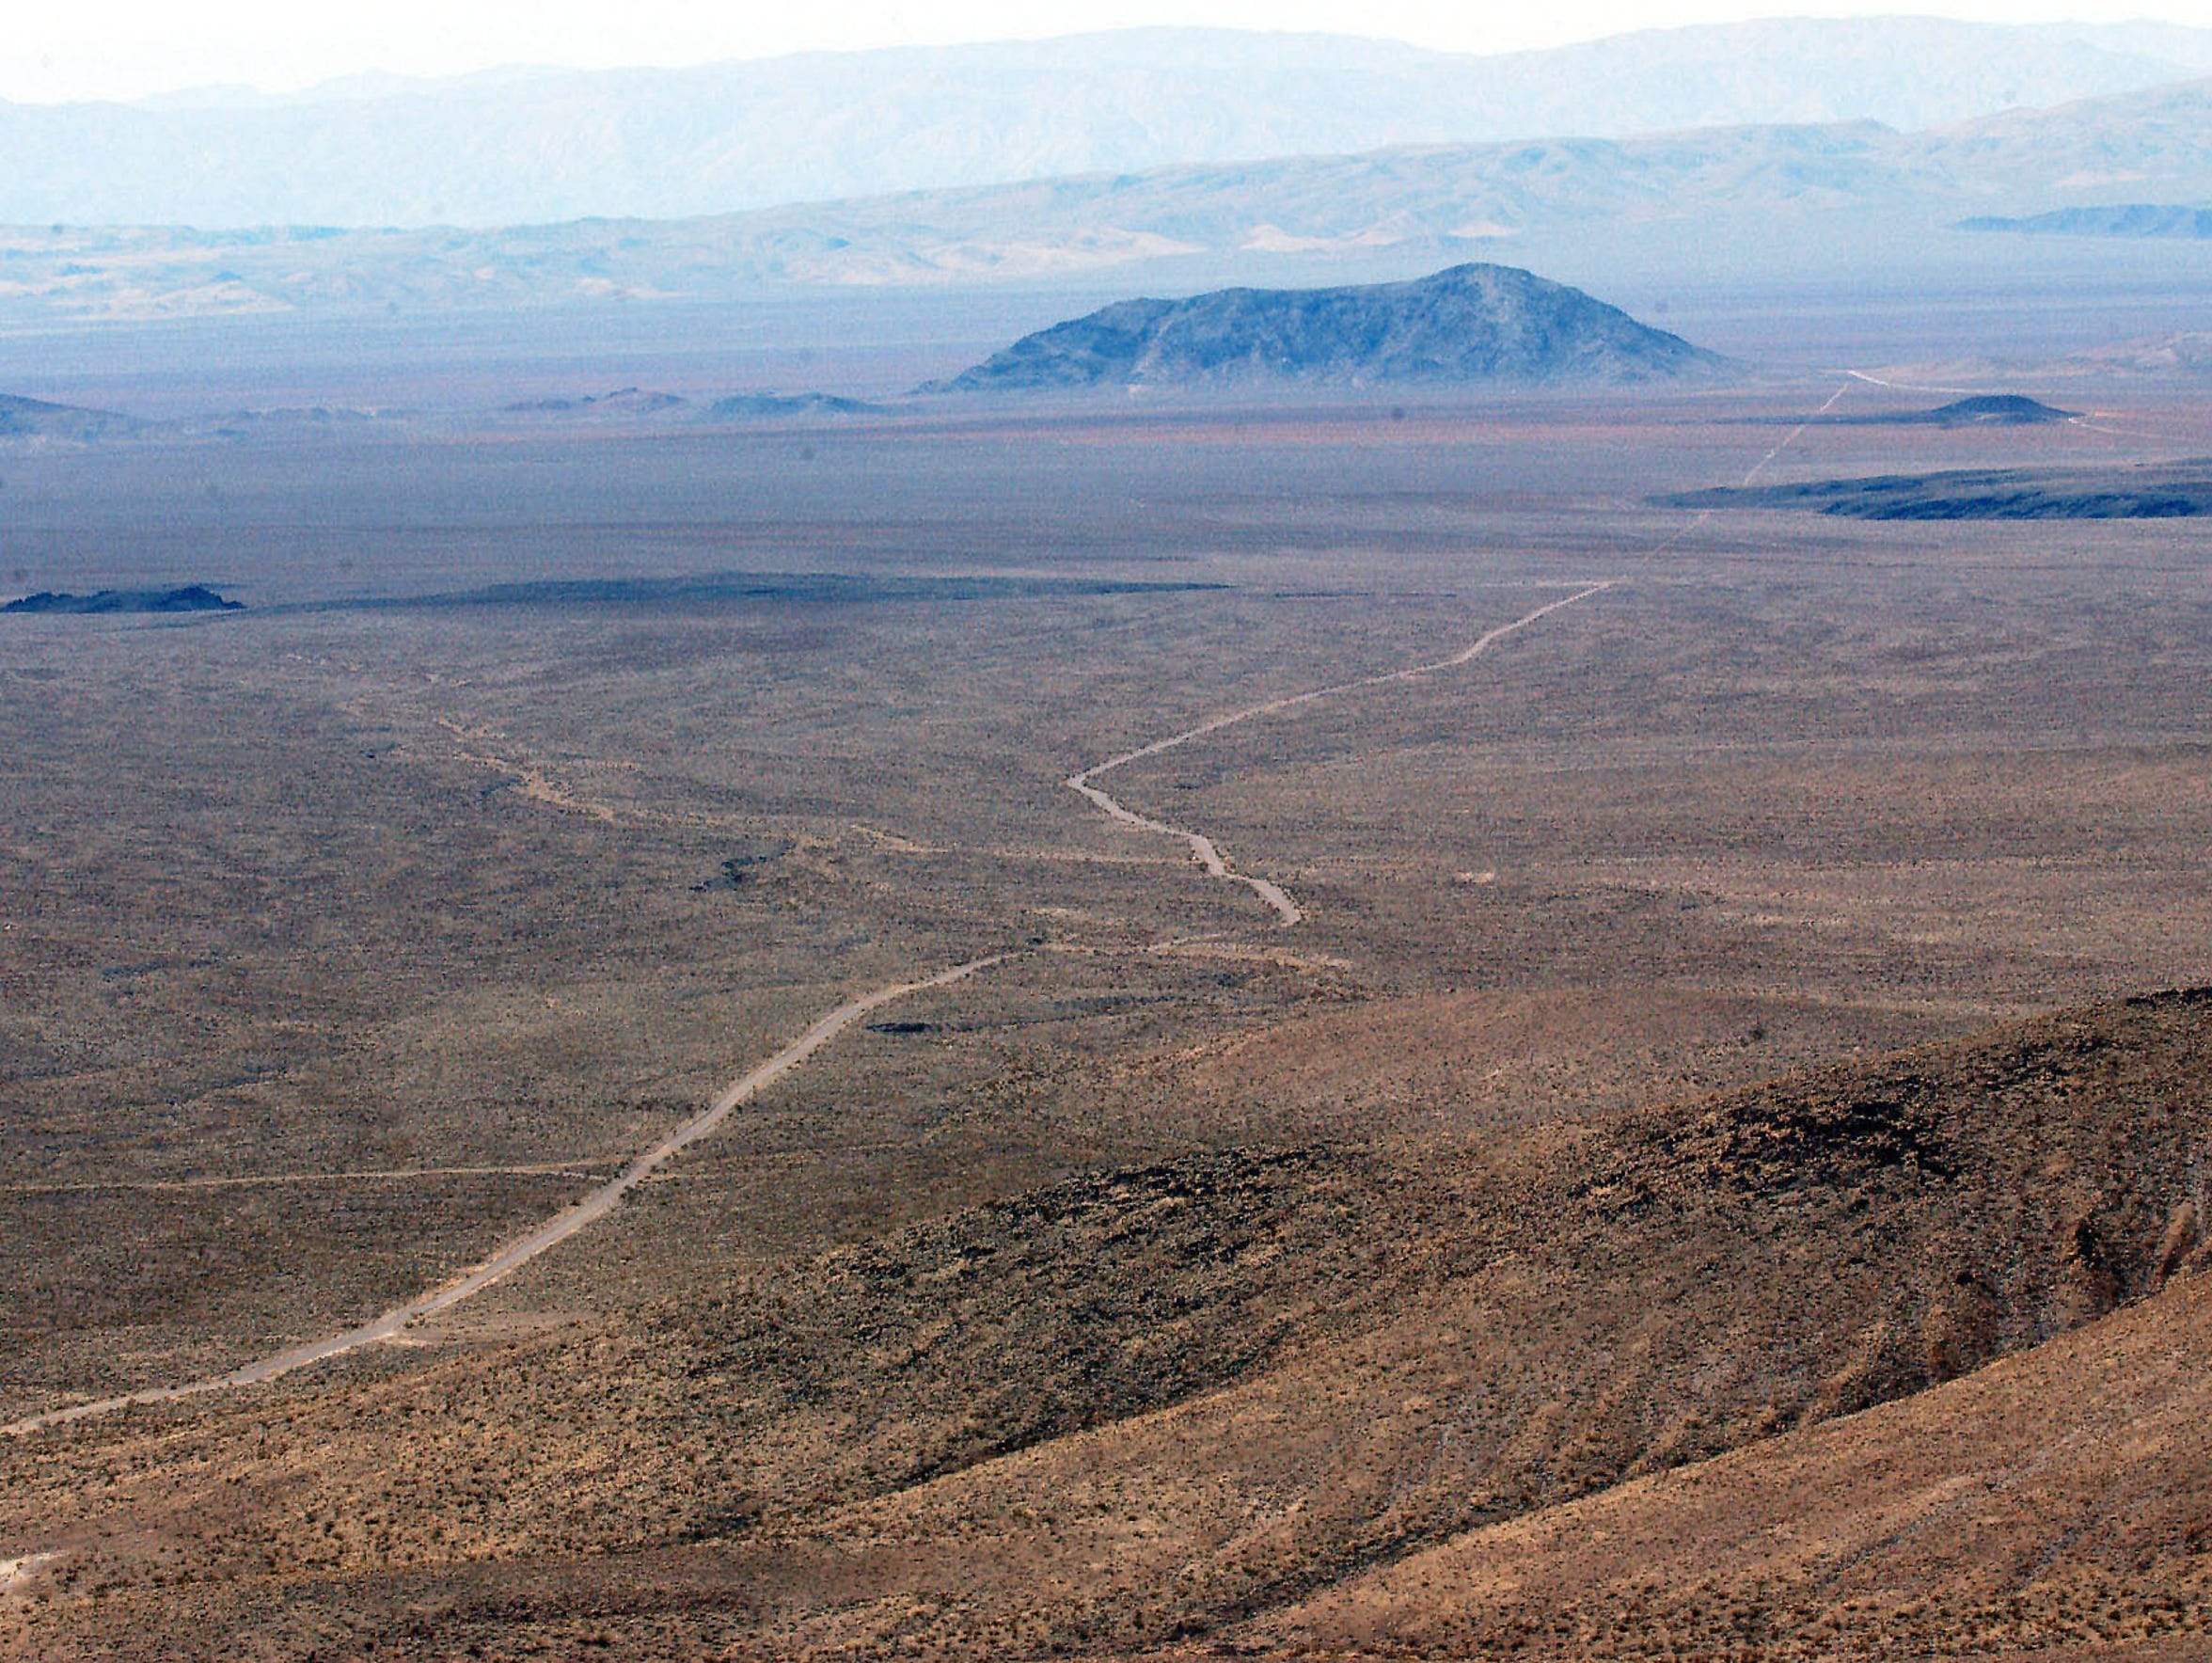 The top of Yucca Mountain, a proposed nuclear waste